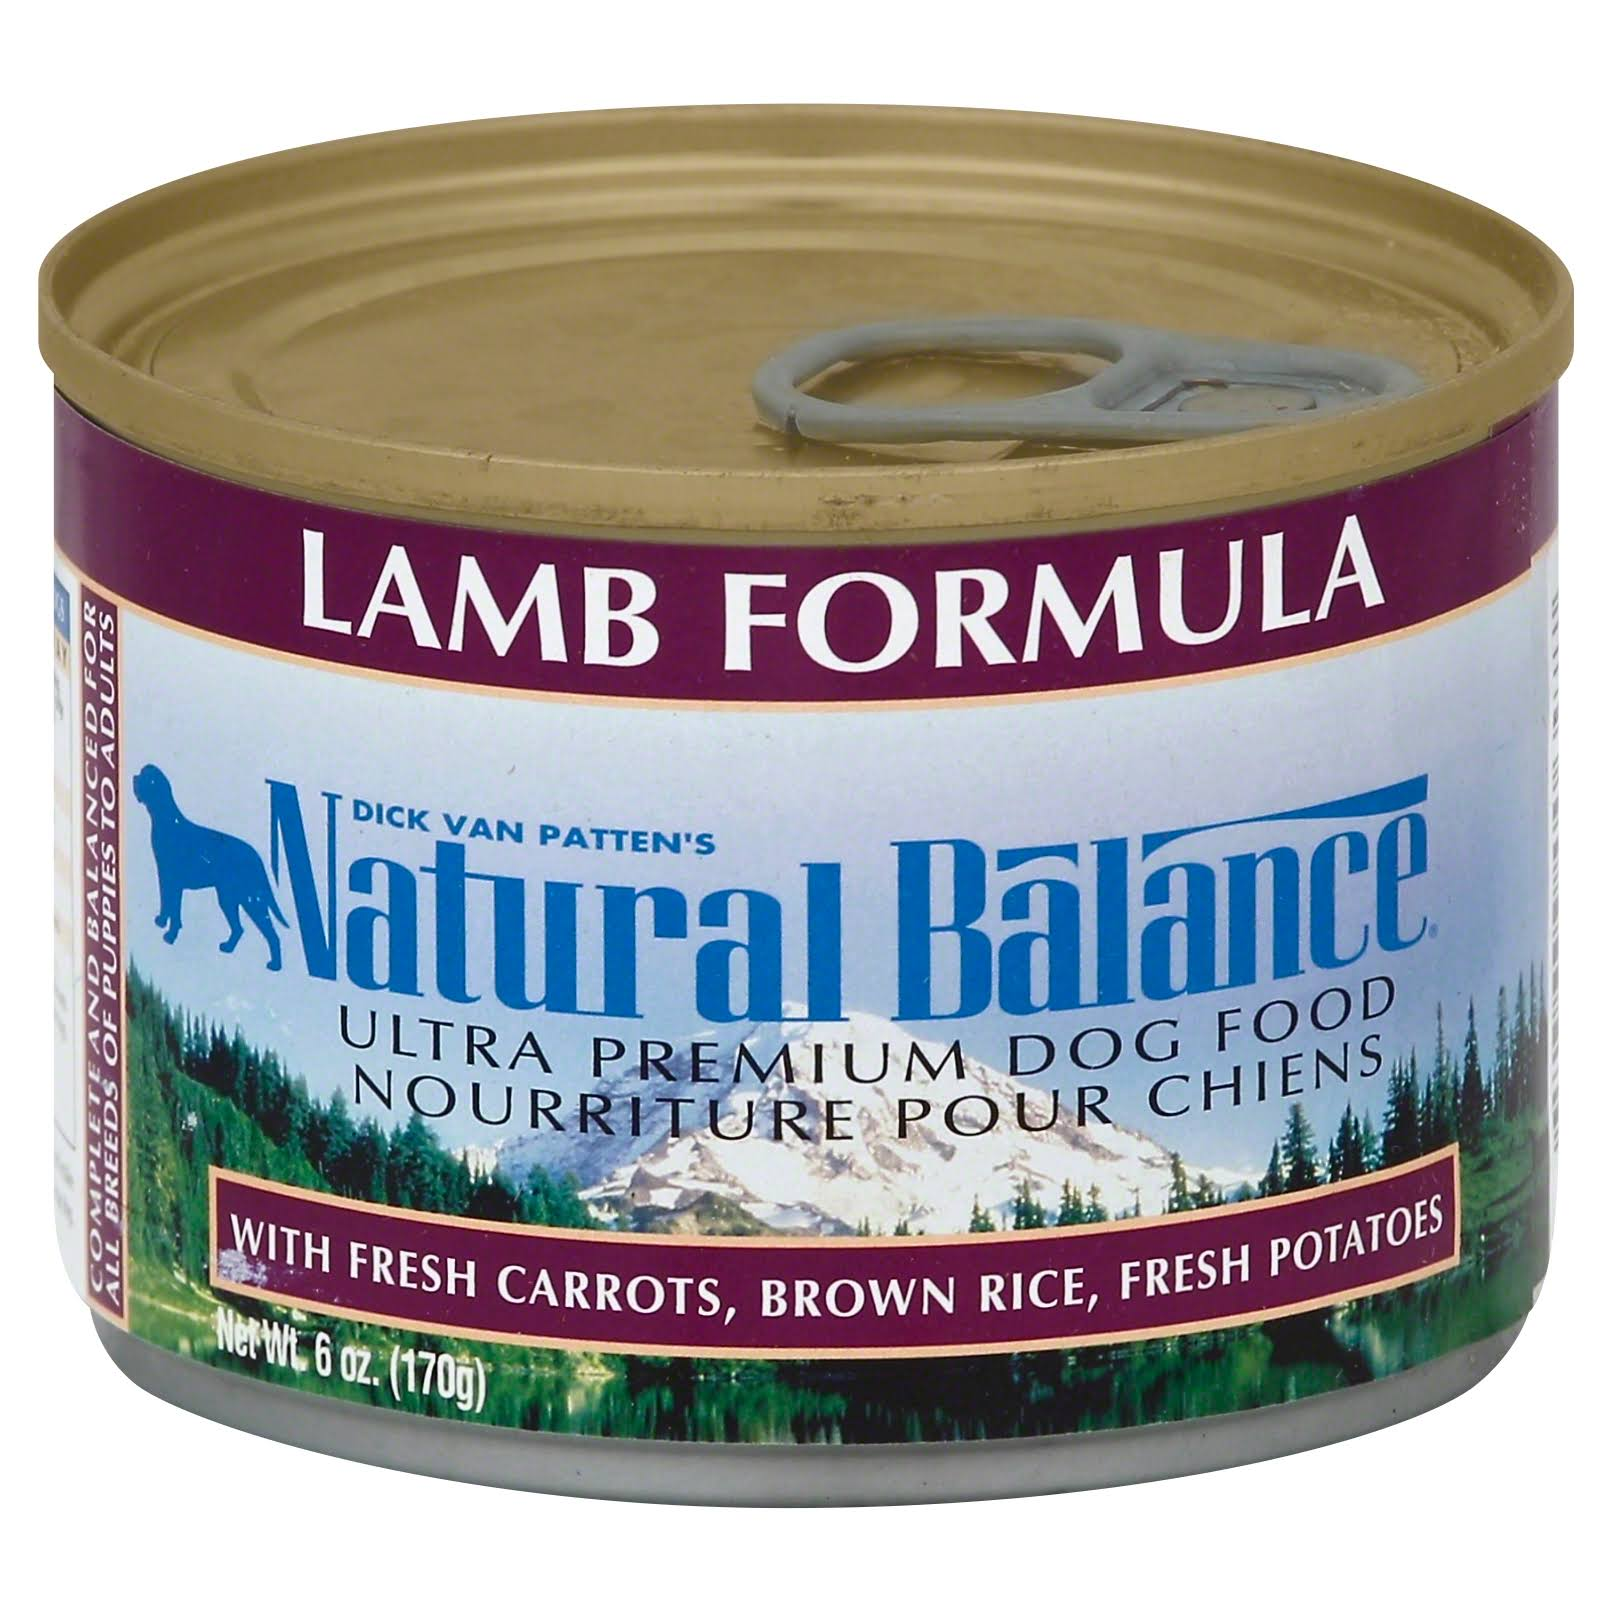 Dick Van Patten's Natural Balance Natural Balance Ultra Premium Canned Dog Food - Lamb Formula, 6oz